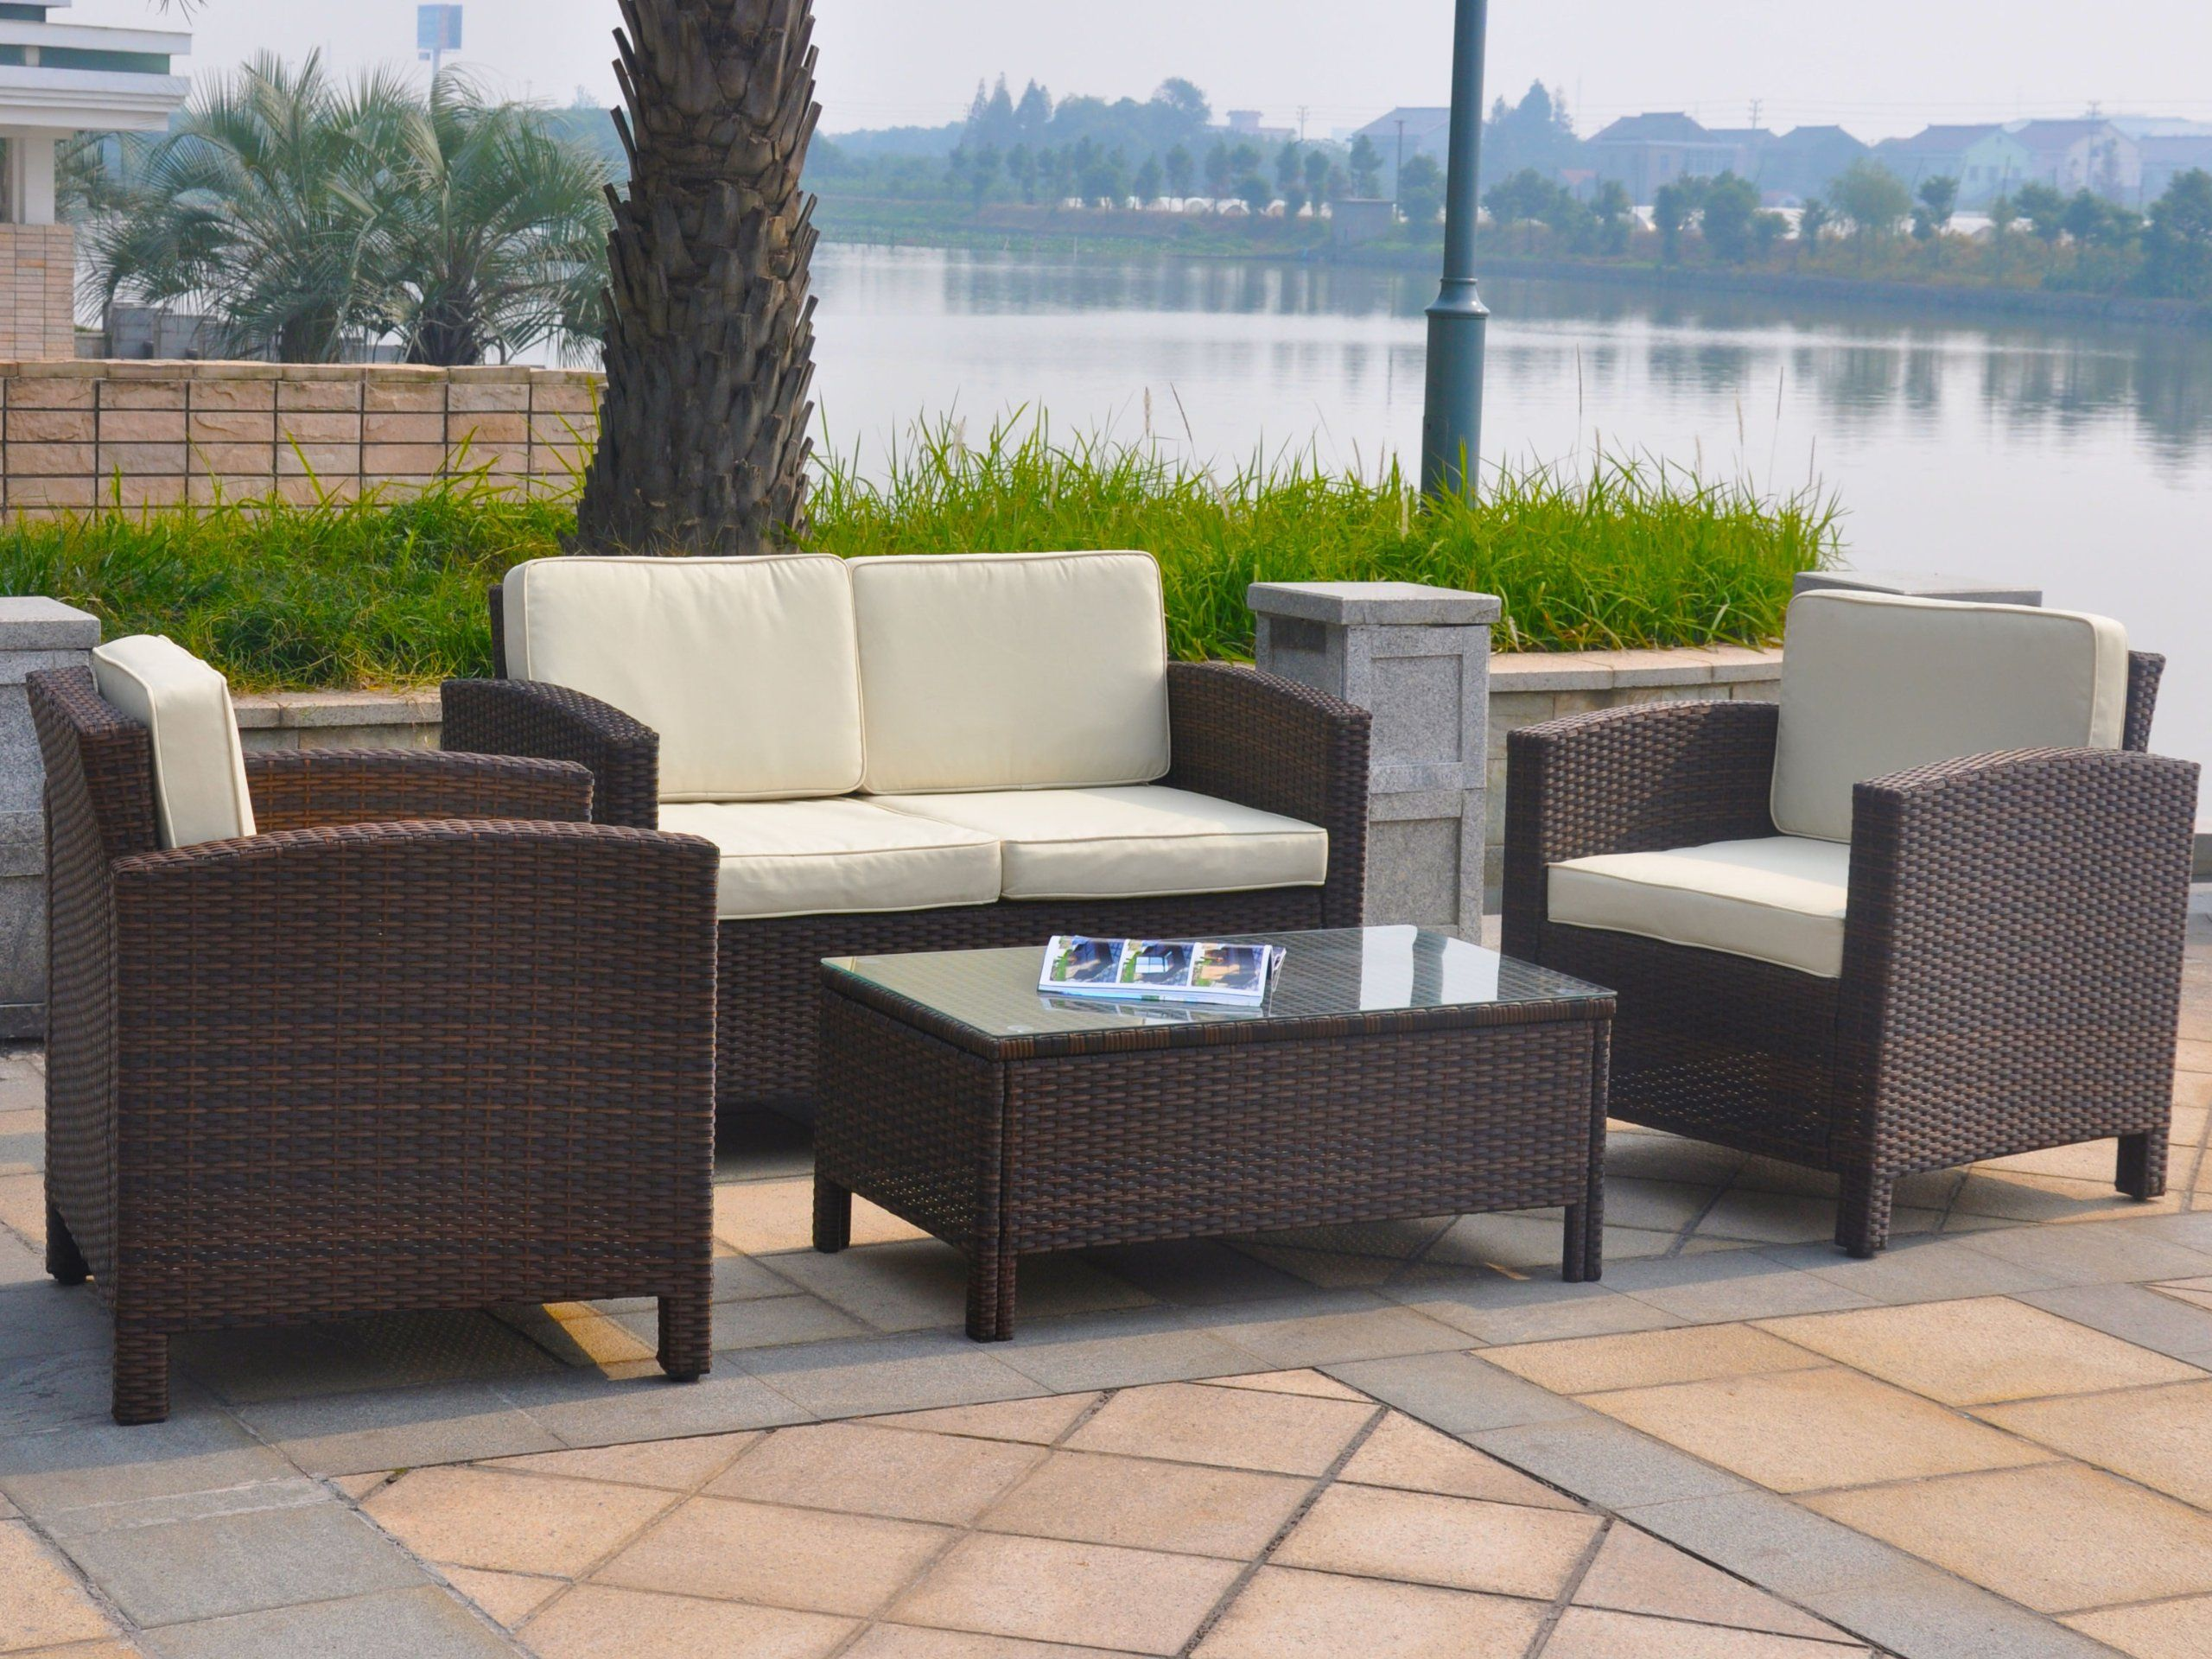 Loungemöbel Rattan Amazon De 13tlg Deluxe Lounge Set Gruppe Garnitur Gartenmöbel